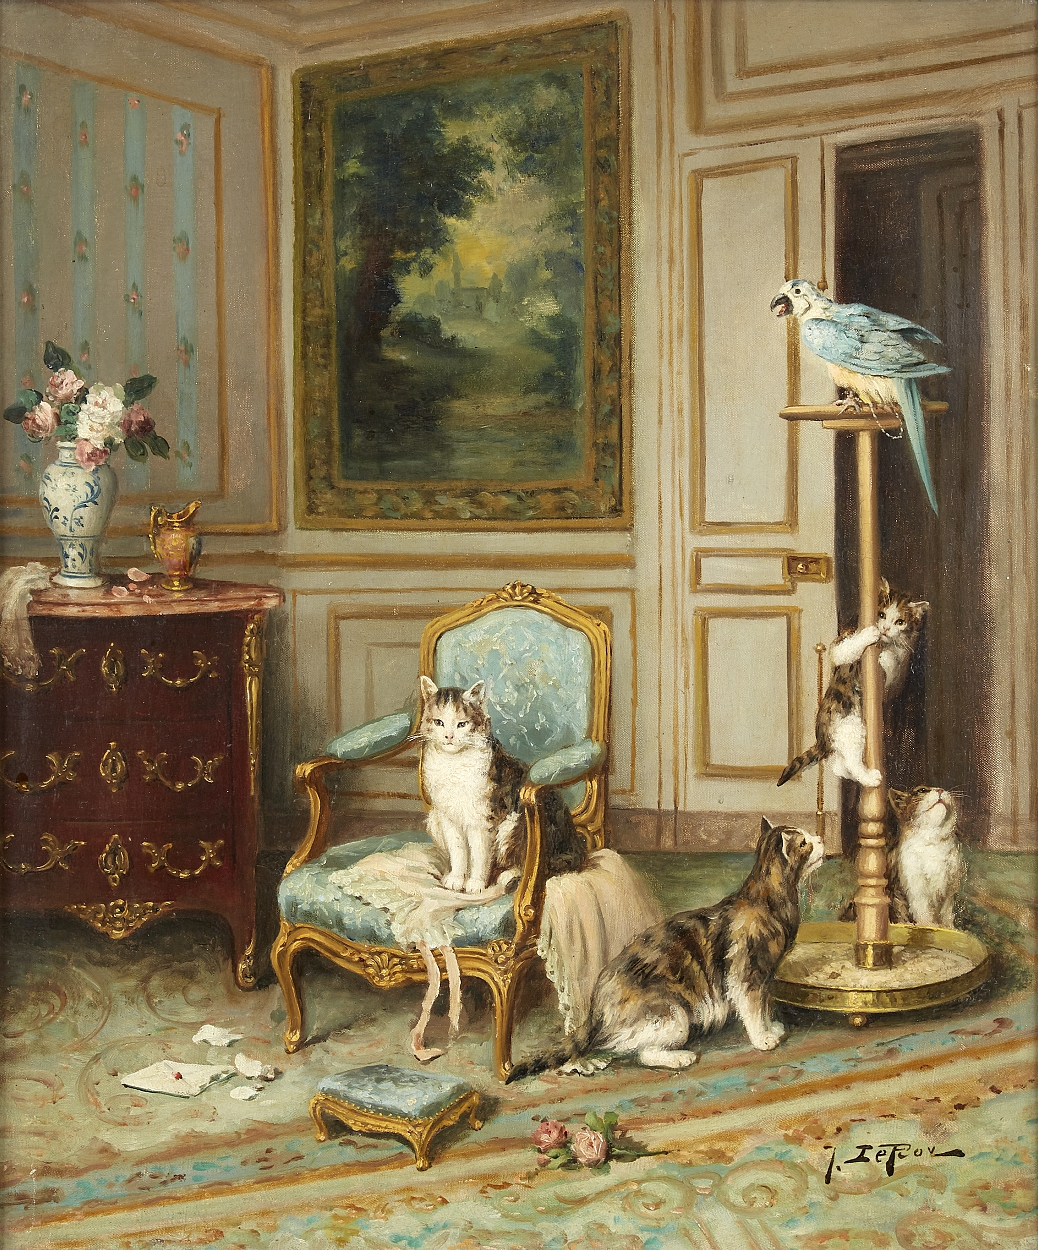 Jules Le Roy, Parrot and cats